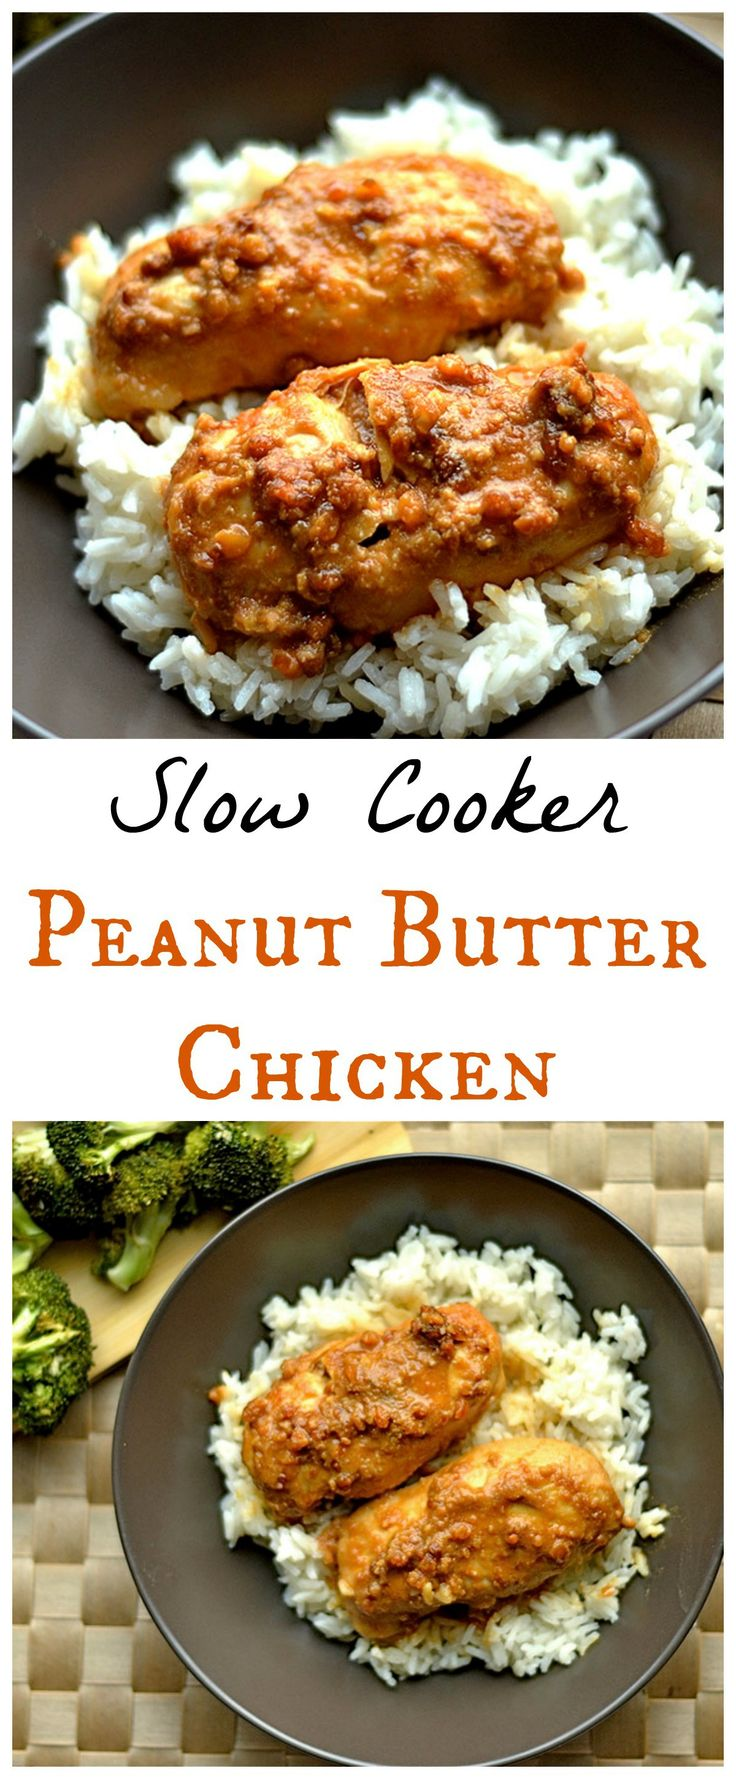 Slow Cooker Peanut Butter Chicken   **can replace rice wine vinegar with white vinegar and dried cilantro**